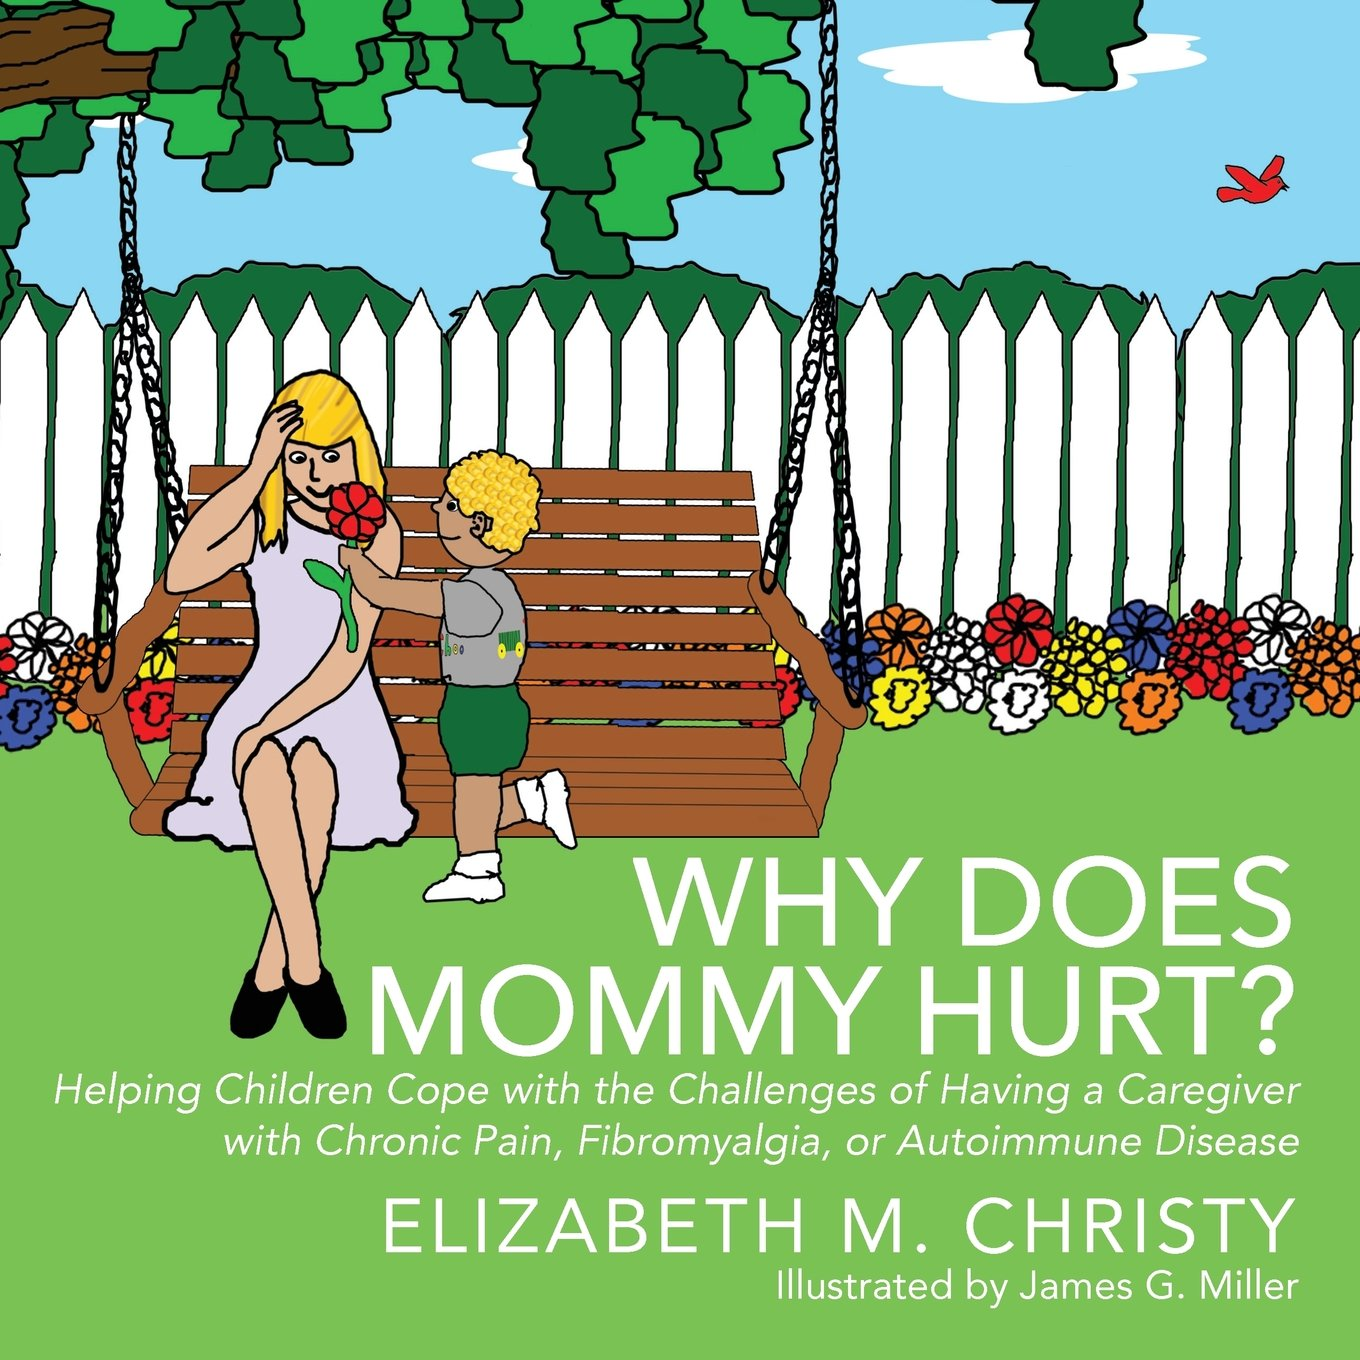 With The Challenges Of Having A Caregiver With Chronic Pain,  Fibromyalgia, Or Autoimmune Disease: Elizabeth M Christy: 9781478732969:  Amazon: Books